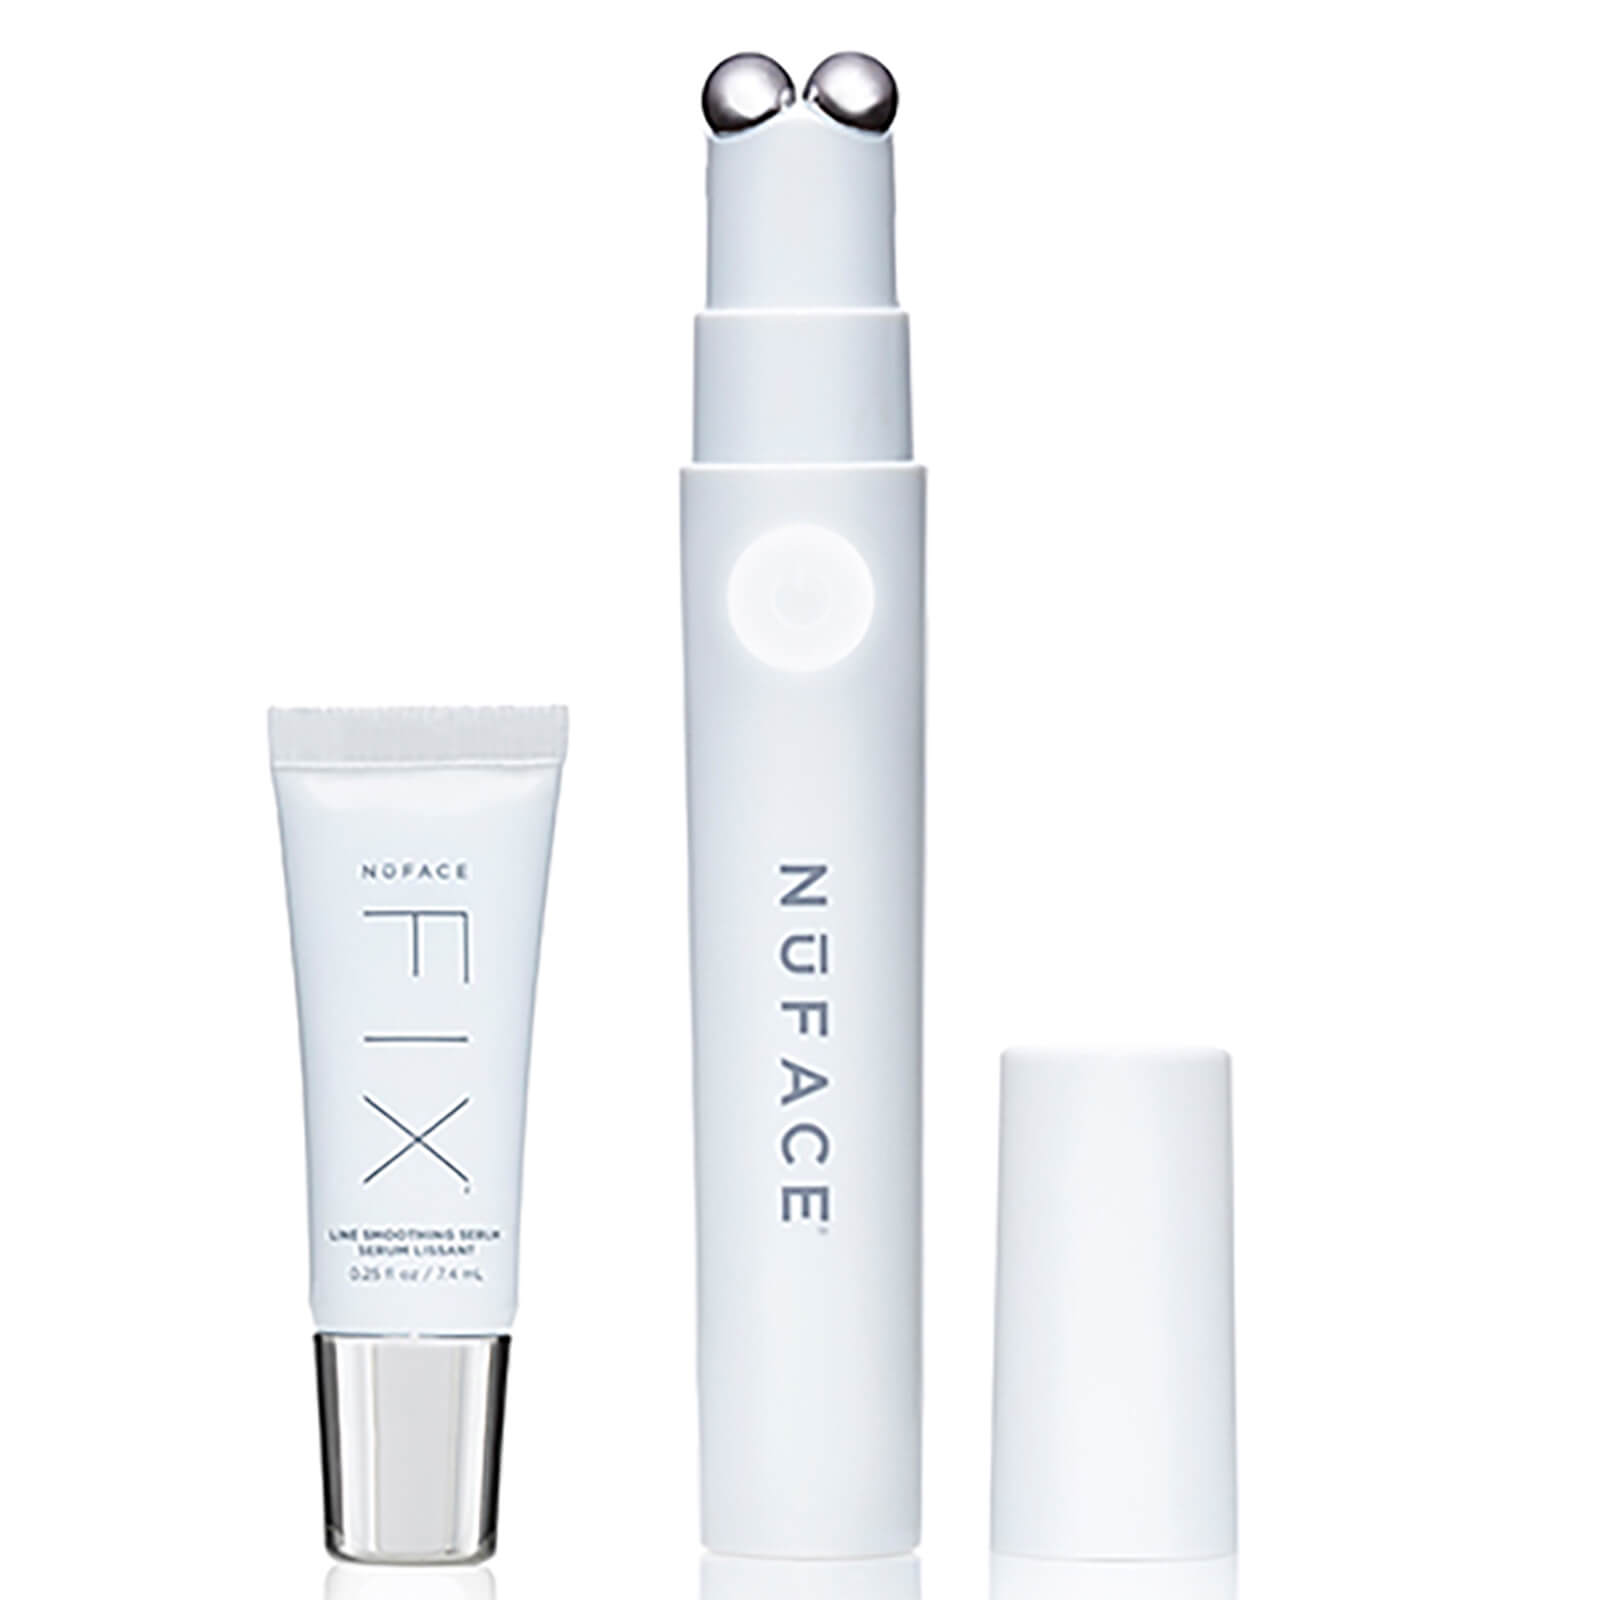 Line Nuface Serum Device And Fix Smoothing ARj3Lq54